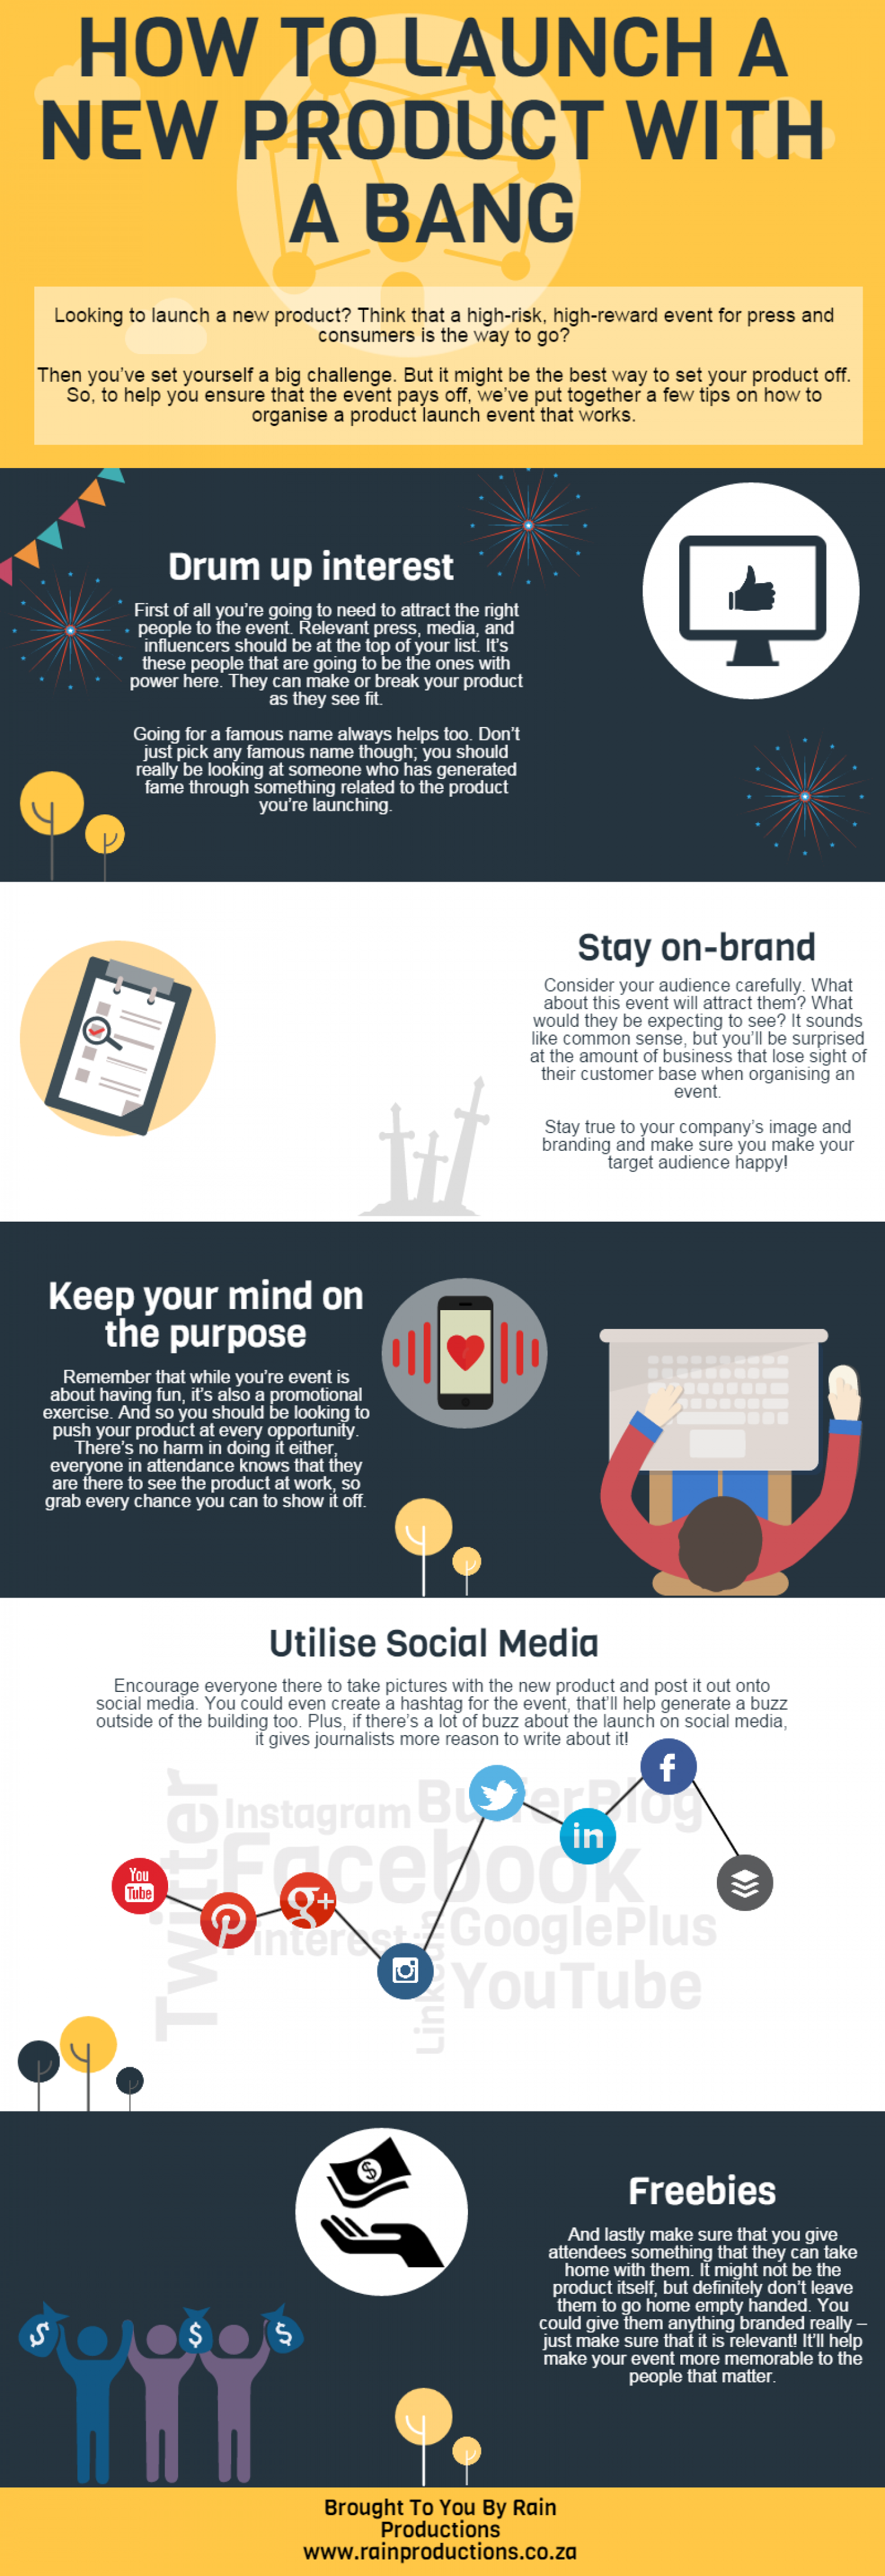 HOW TO LAUNCH A NEW PRODUCT WITH A BANG Infographic